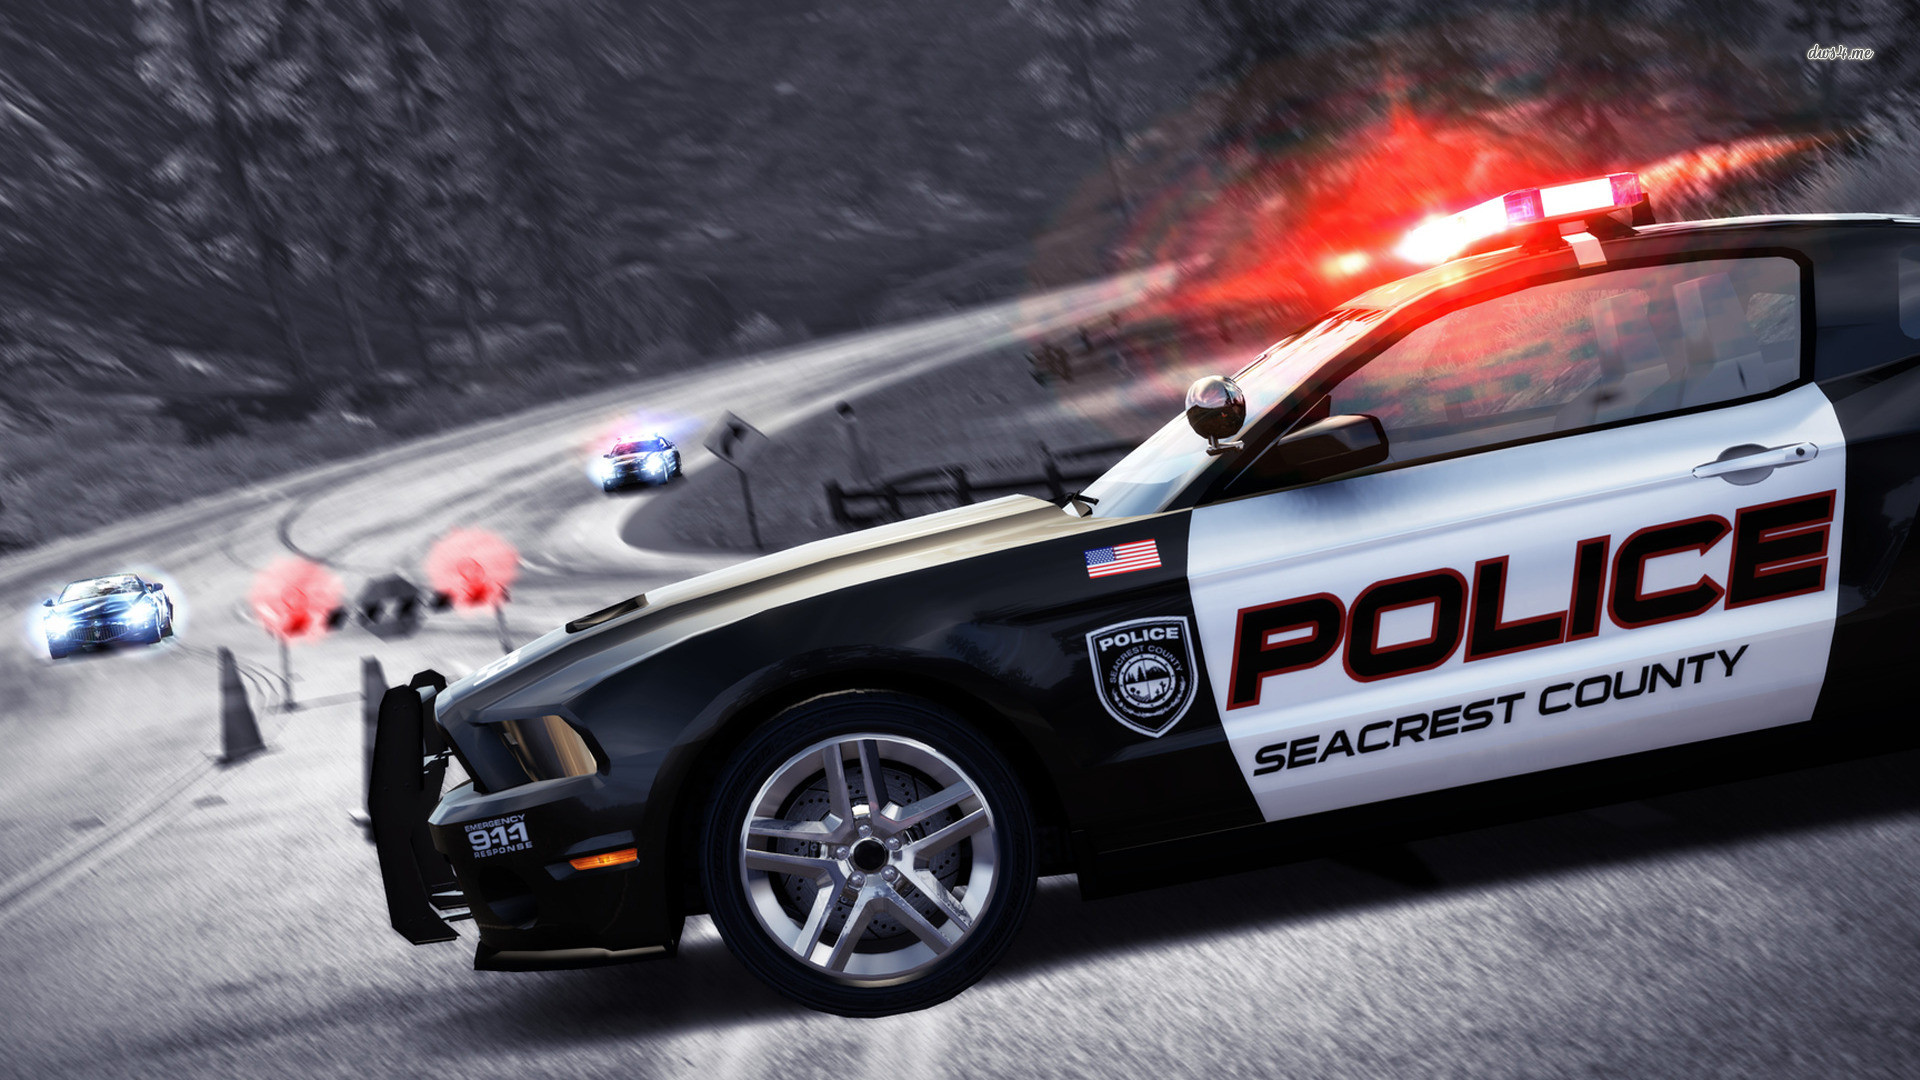 Speed – Hot Pursuit police car wallpaper – Game wallpapers – #13119 .